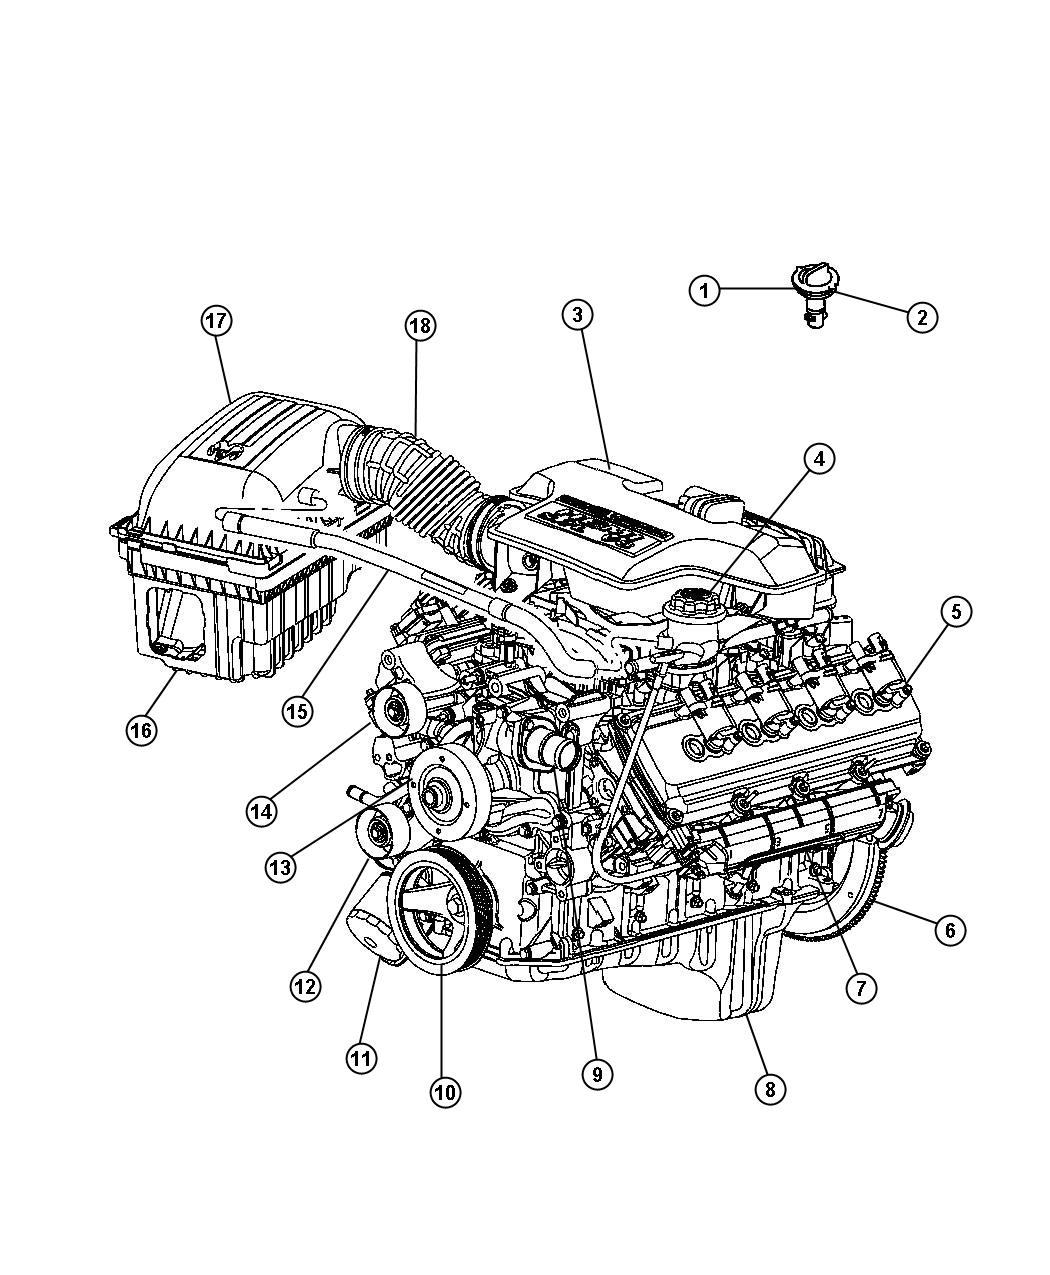 Basic Sensors Diagnostics besides P 0996b43f80cb0b9f as well Chevy Ls Engine Diagram also Dodge Ram 2500 Engine Diagram together with 6n1o3 Gmc Yukon Xl 1500 2001 Yukon 5 3 Liter Engine Trouble. on chevy s10 map sensor